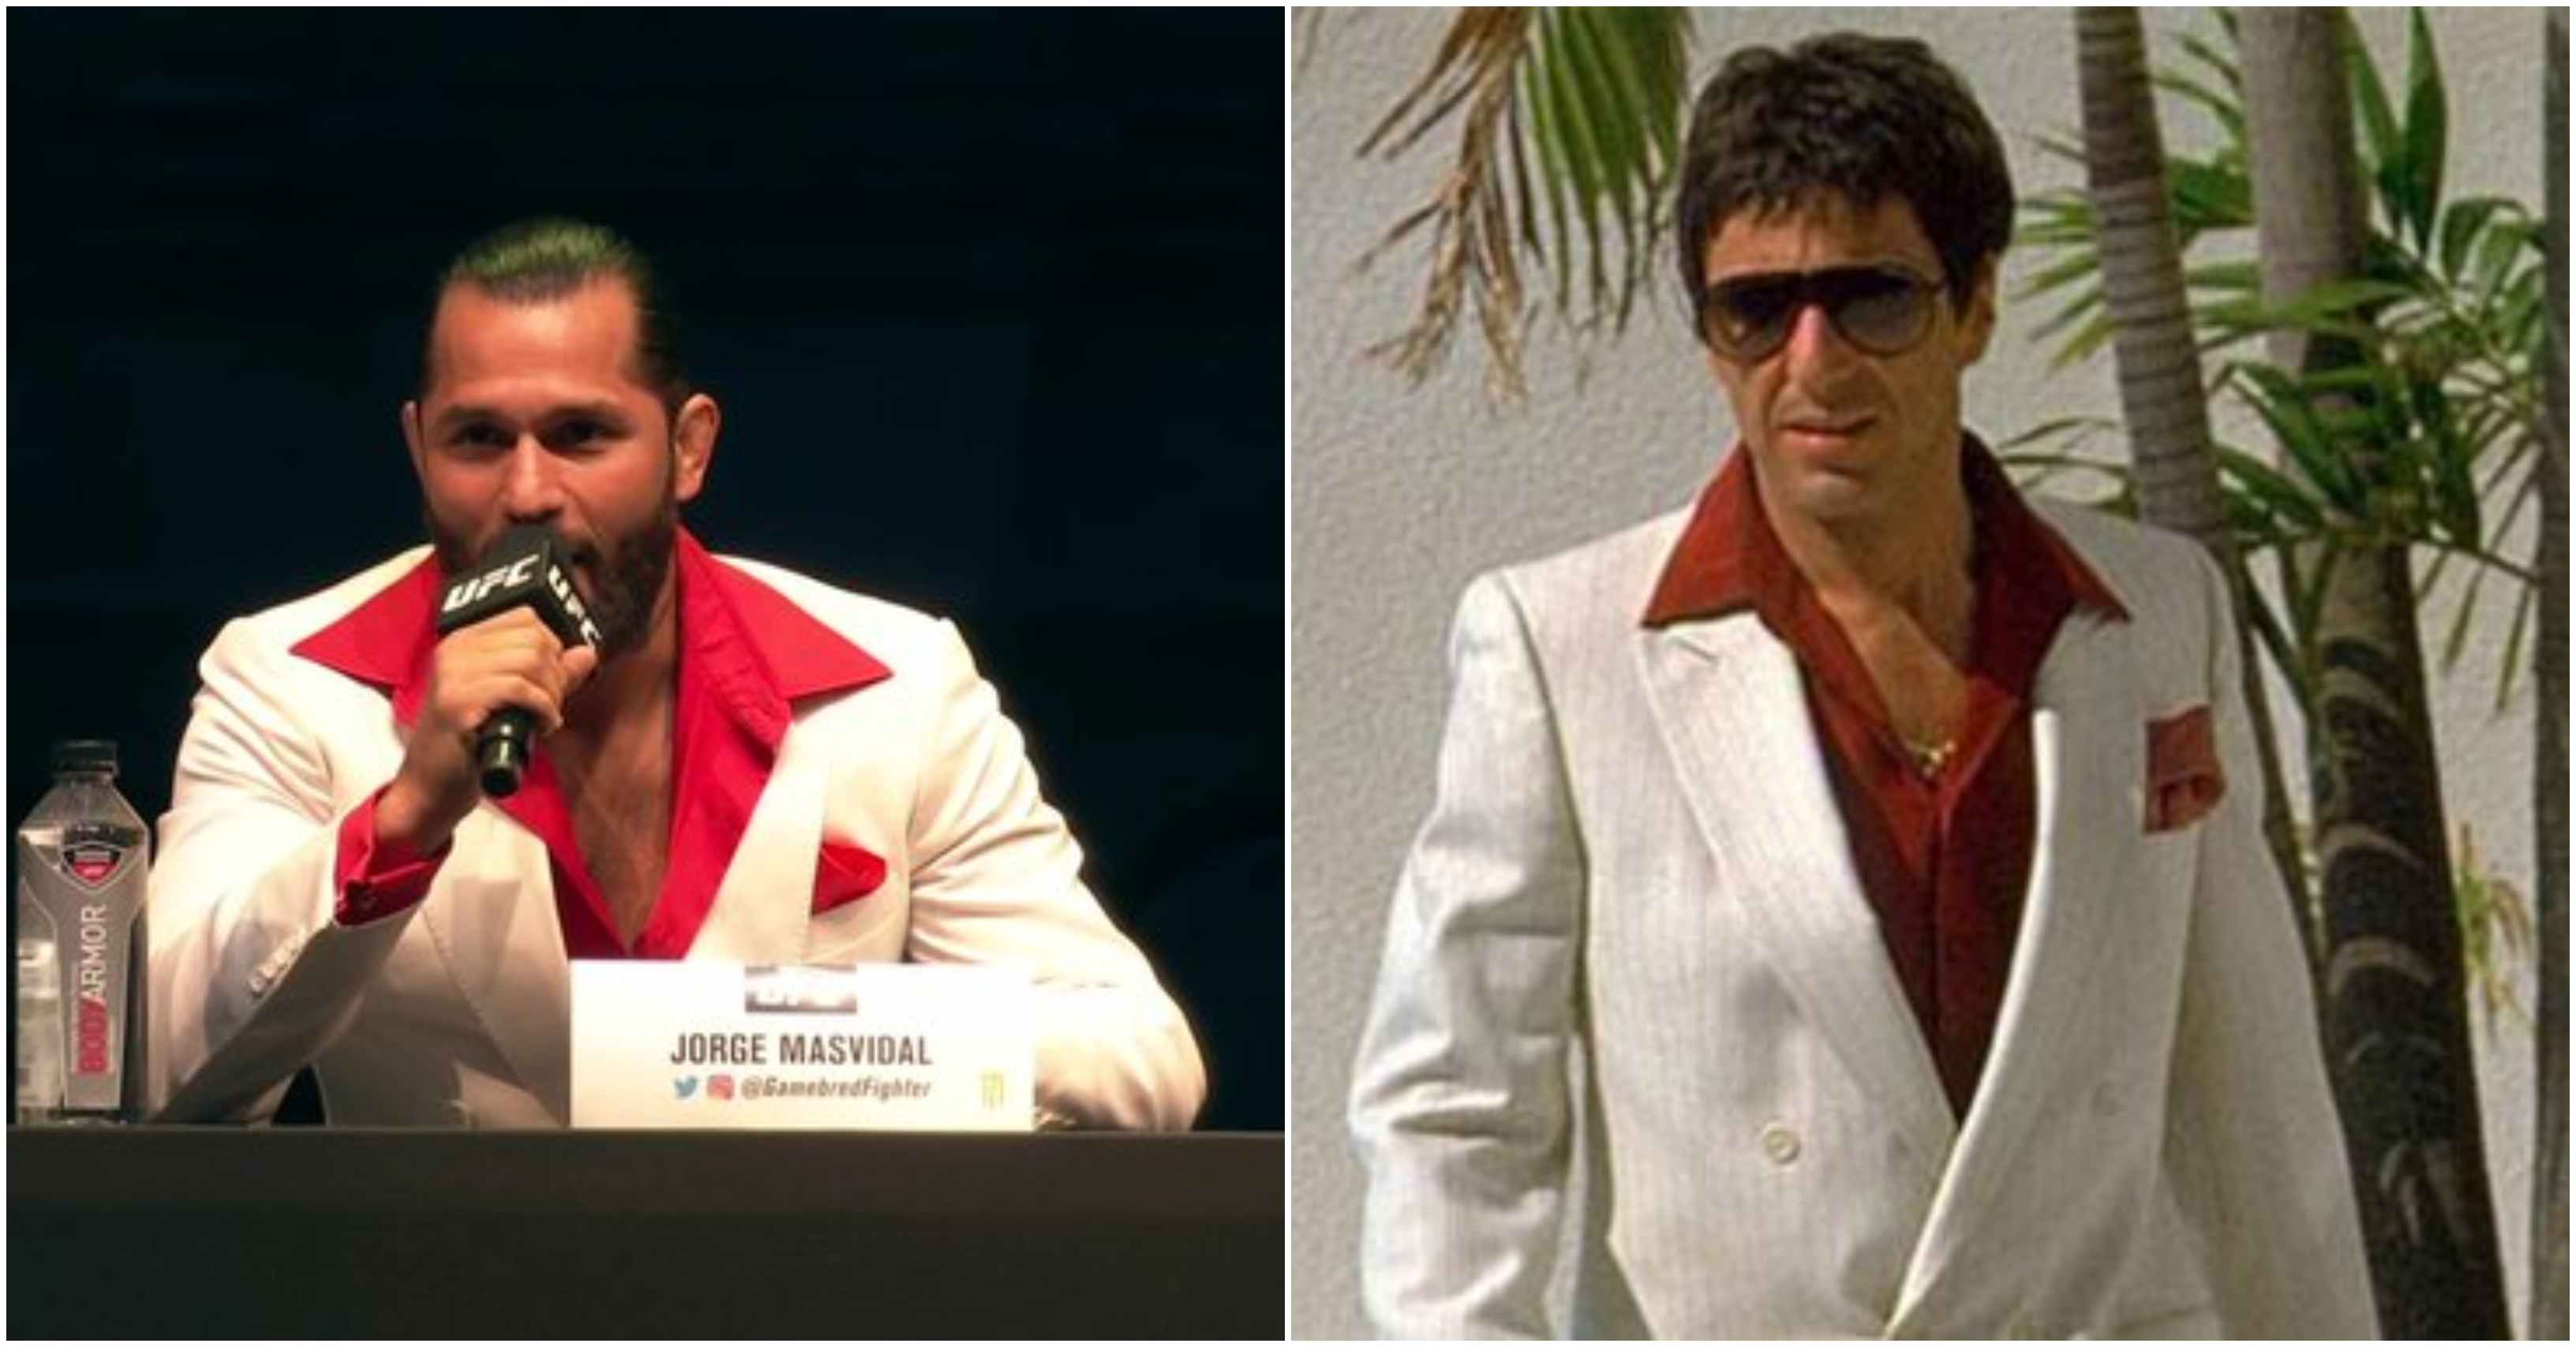 Twitter goes crazy as Jorge Masvidal does his best Scarface impression - Masvidal